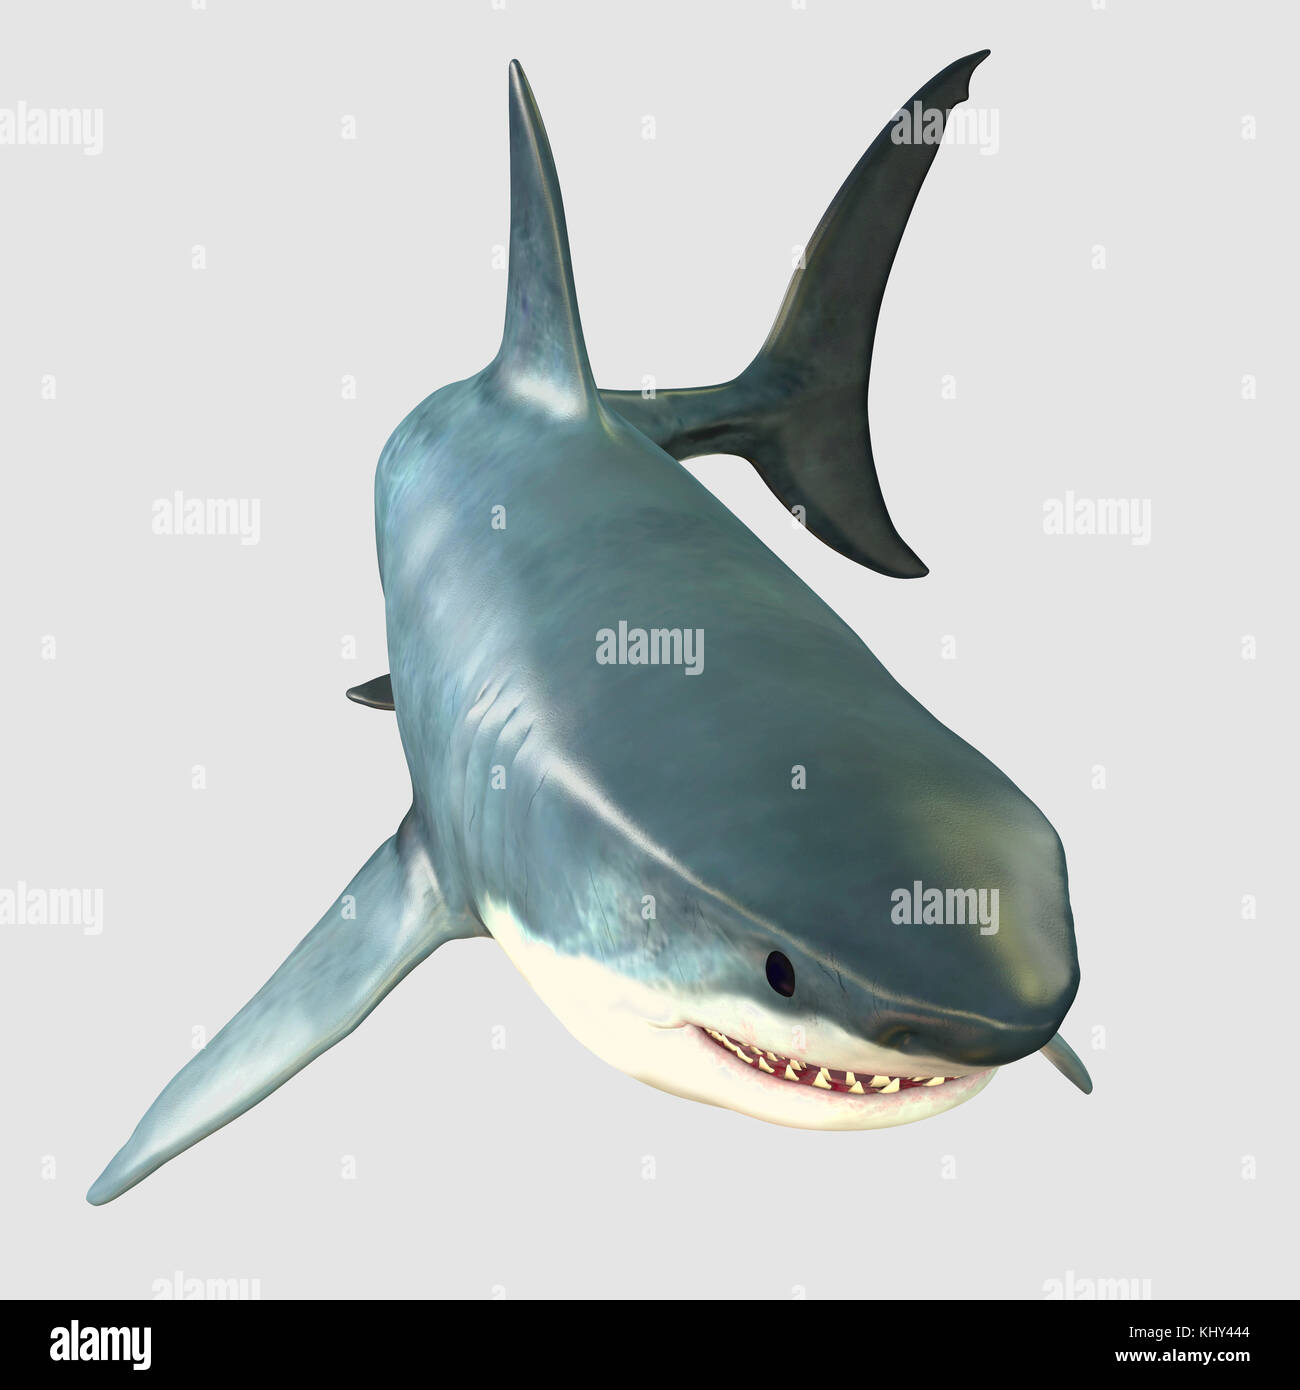 Overview Great White Shark - The Great White Shark is one of the largest predators in the ocean and inhabits temperate - Stock Image